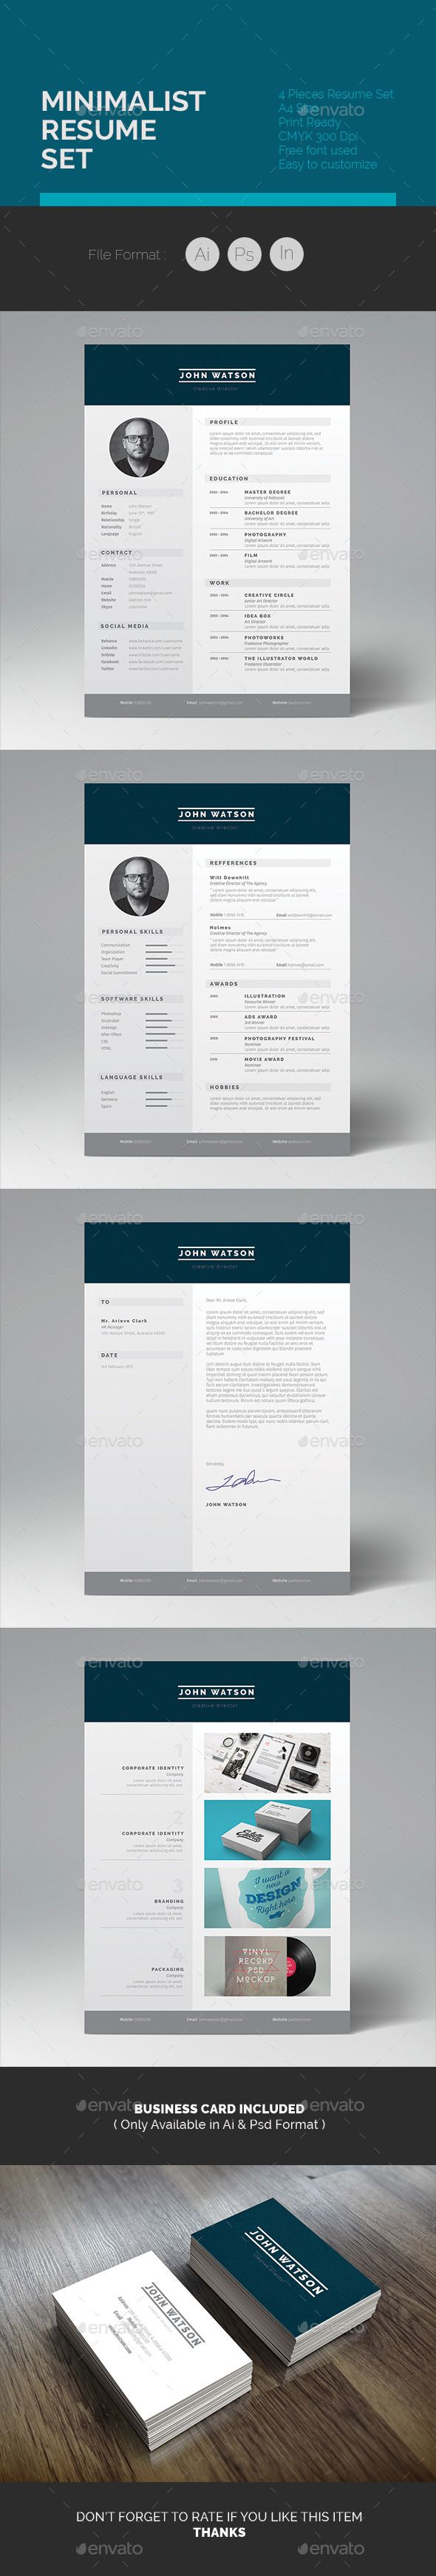 Minimalist Resume Set Template 237 best CV